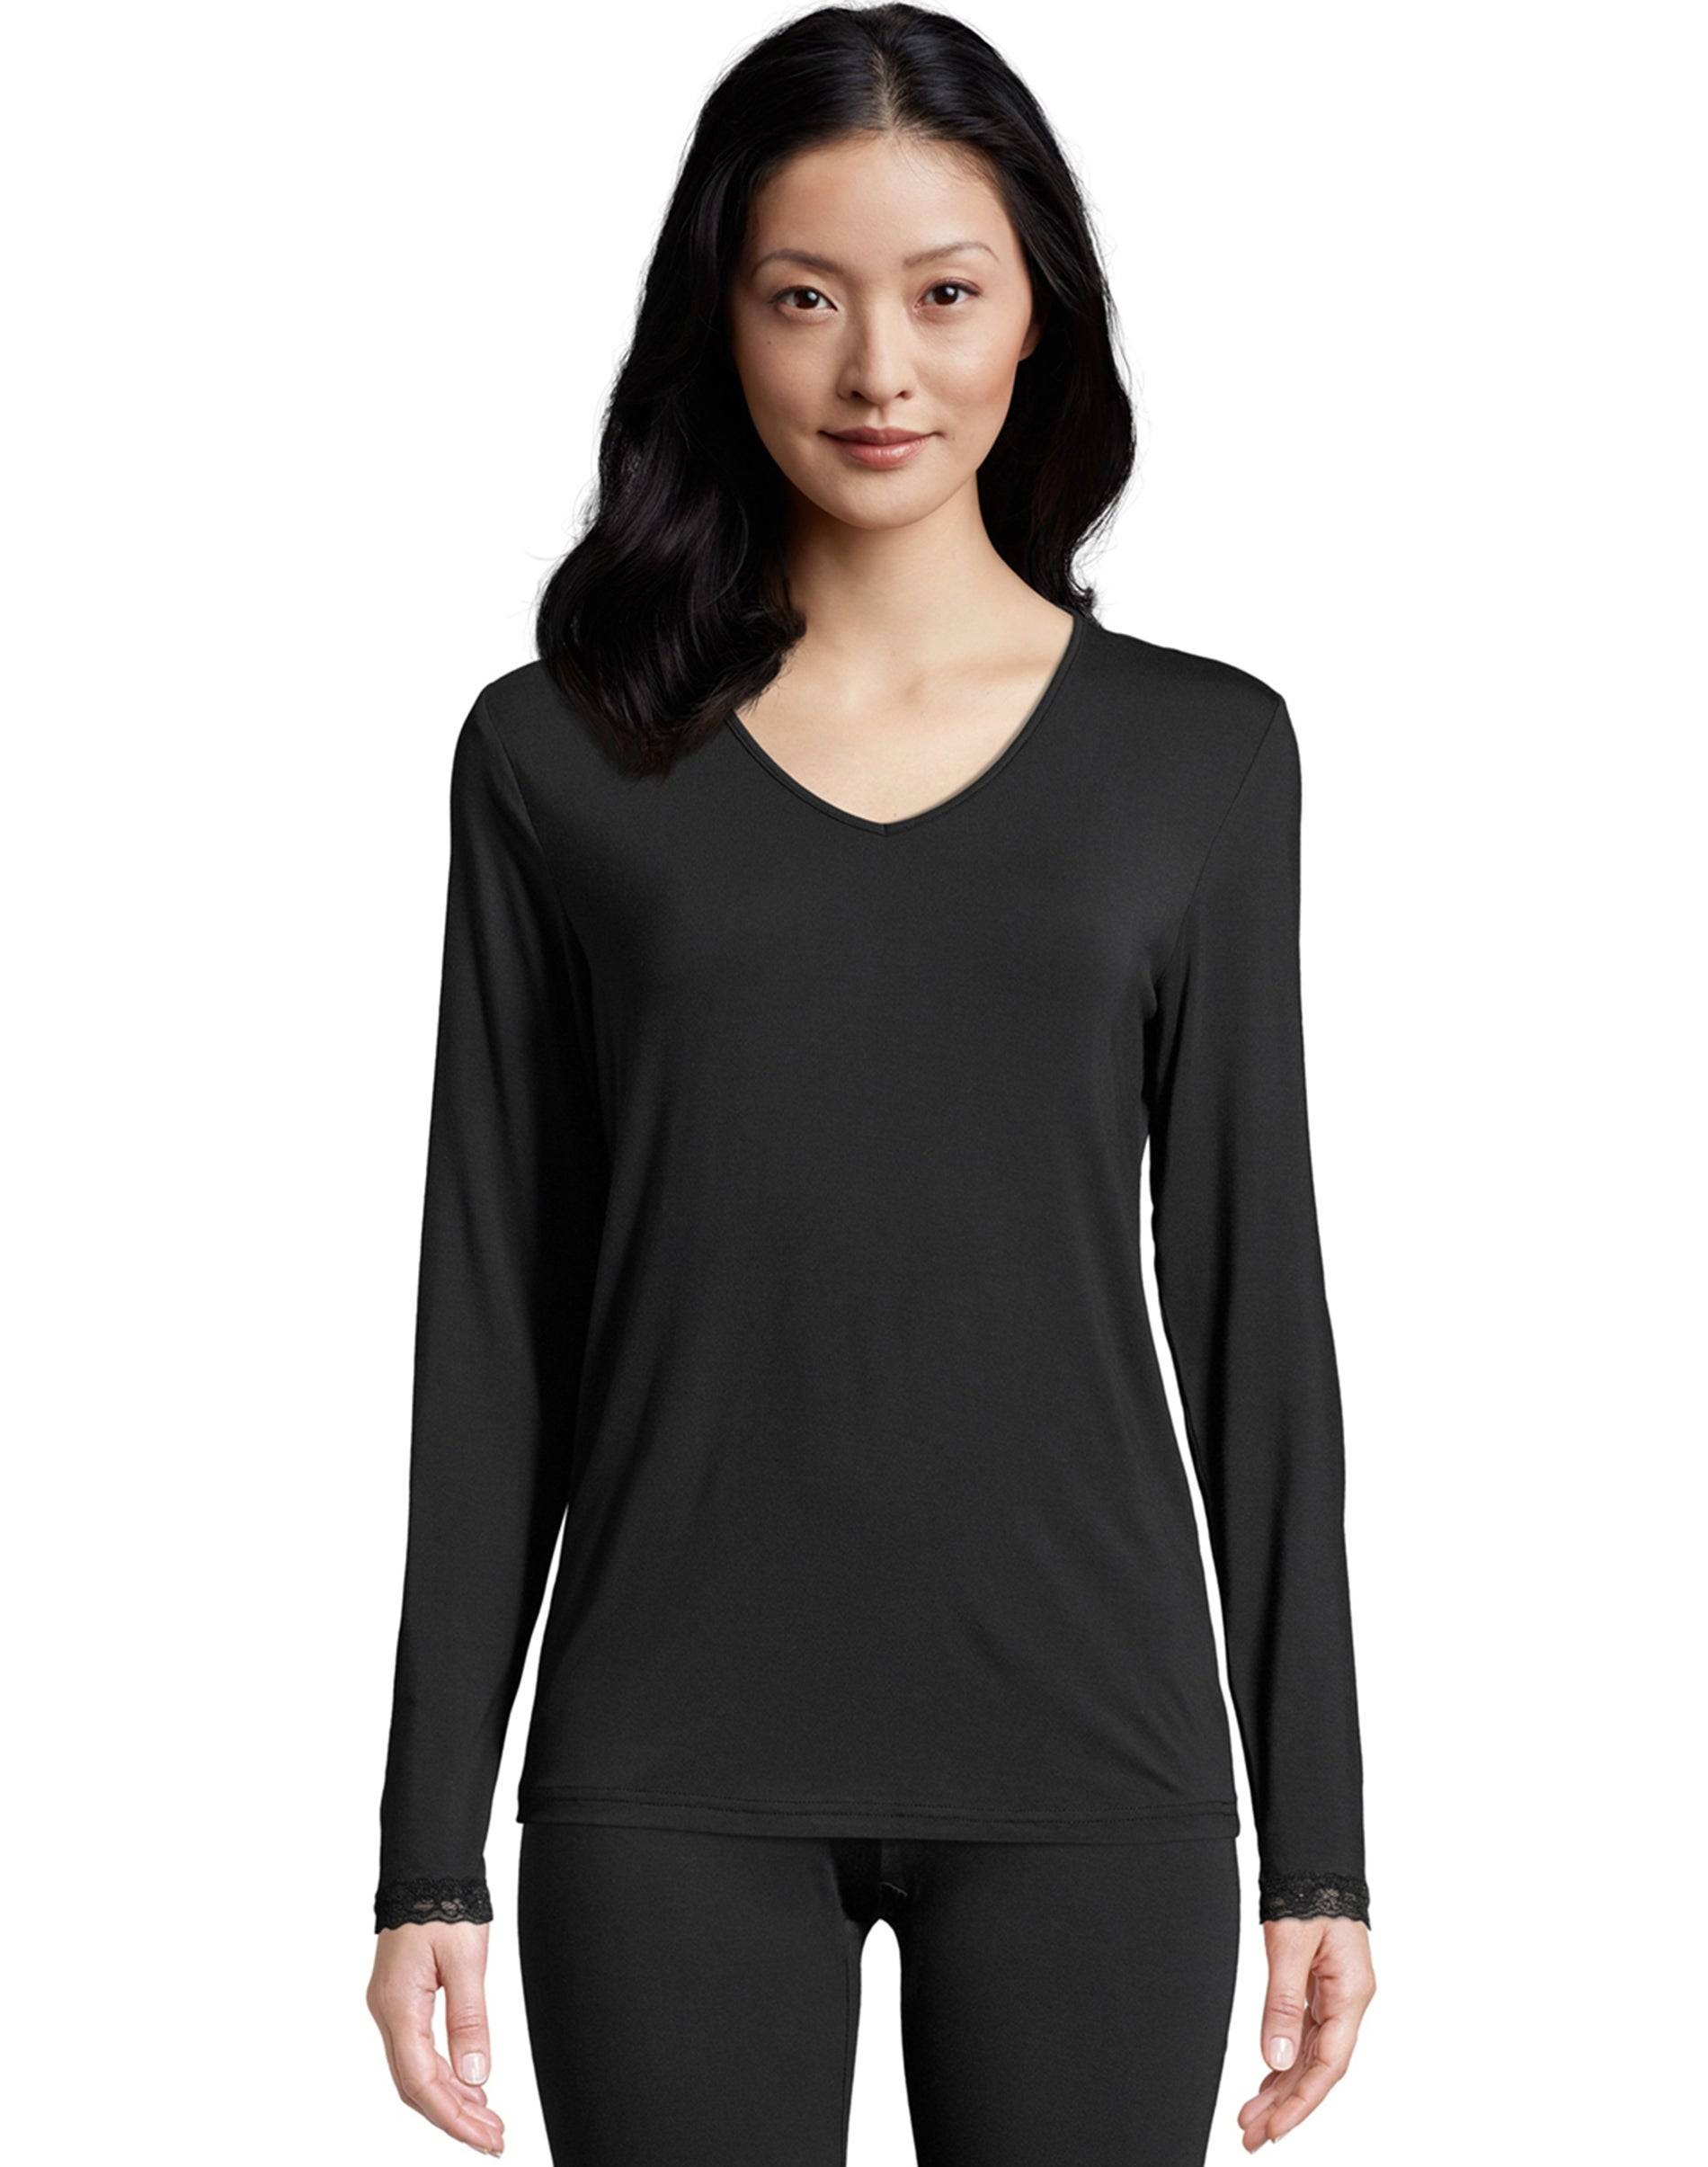 Hanes Women's Comfort Collection Thermal Top Black L